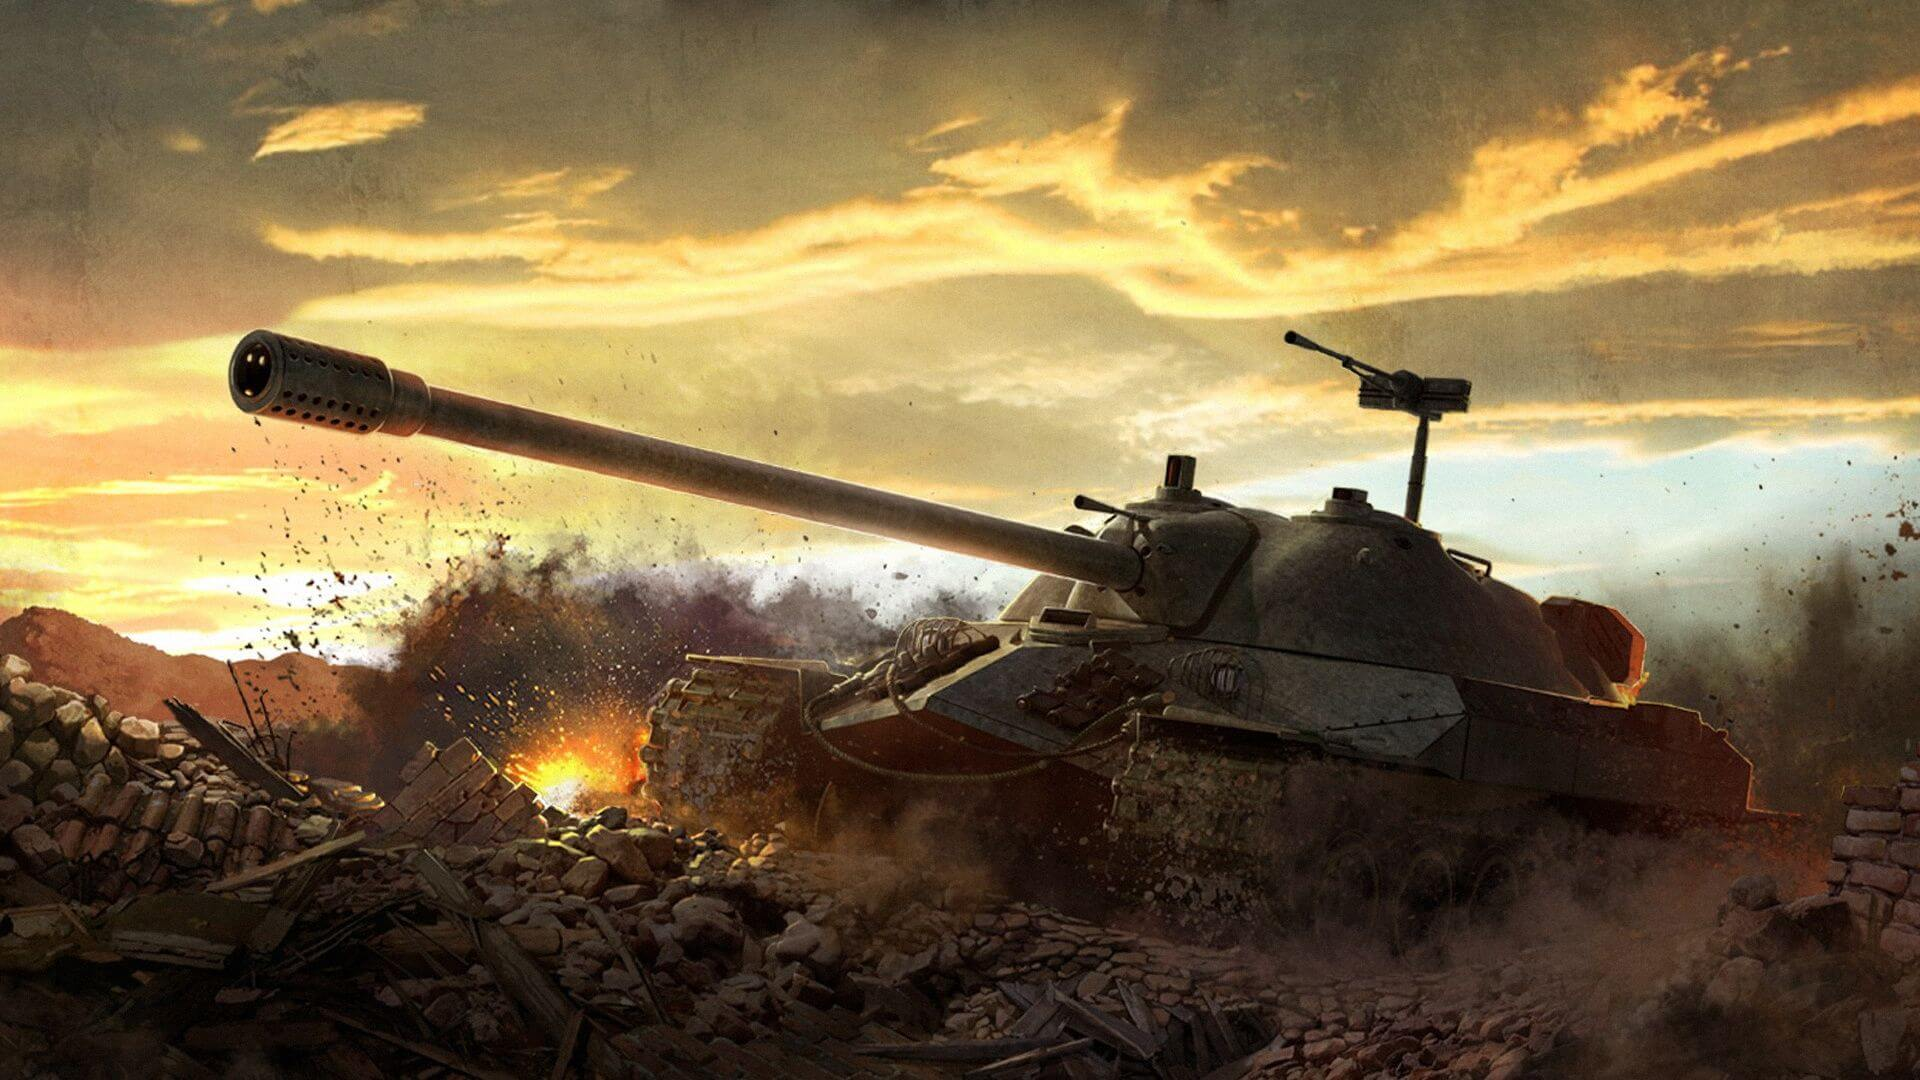 Игра world of tanks бонус онлайн бесплатная танки